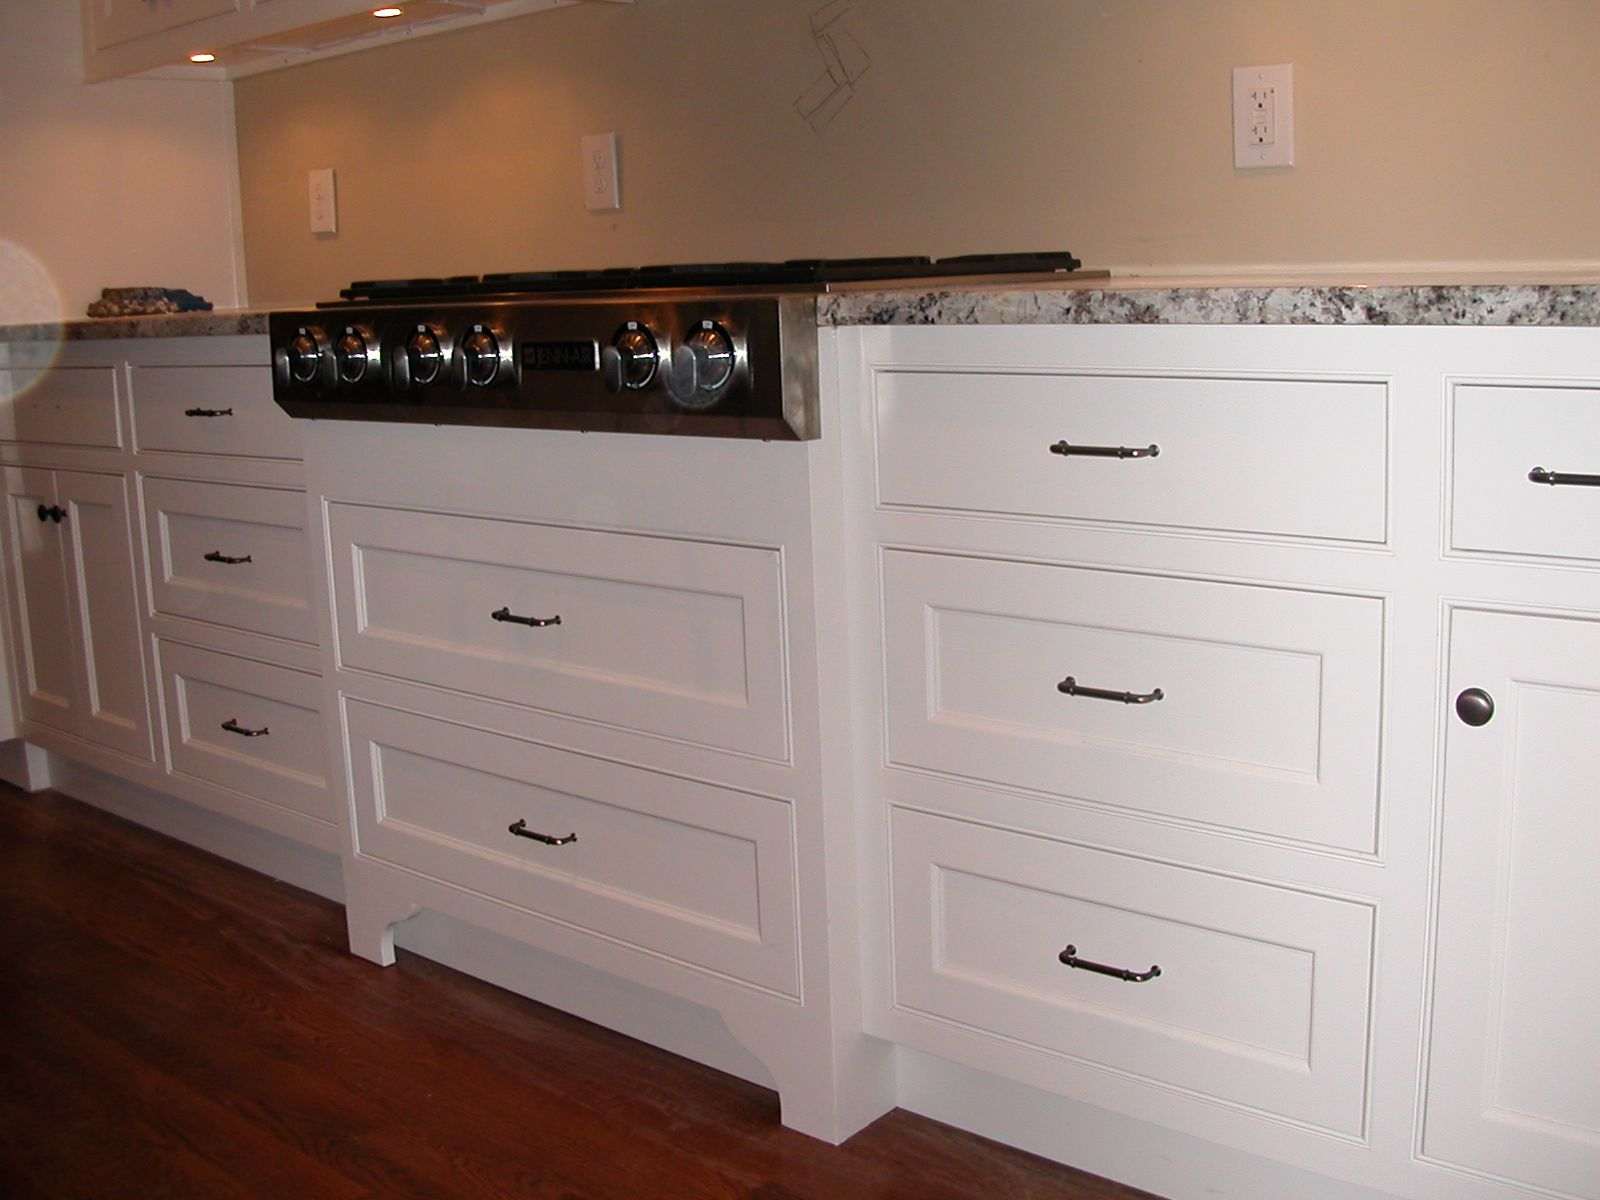 Inset Kitchen Cabinet Drawers  Google Search  Kitchen Cabinets Prepossessing How Much Does It Cost To Replace Kitchen Cabinets Decorating Design